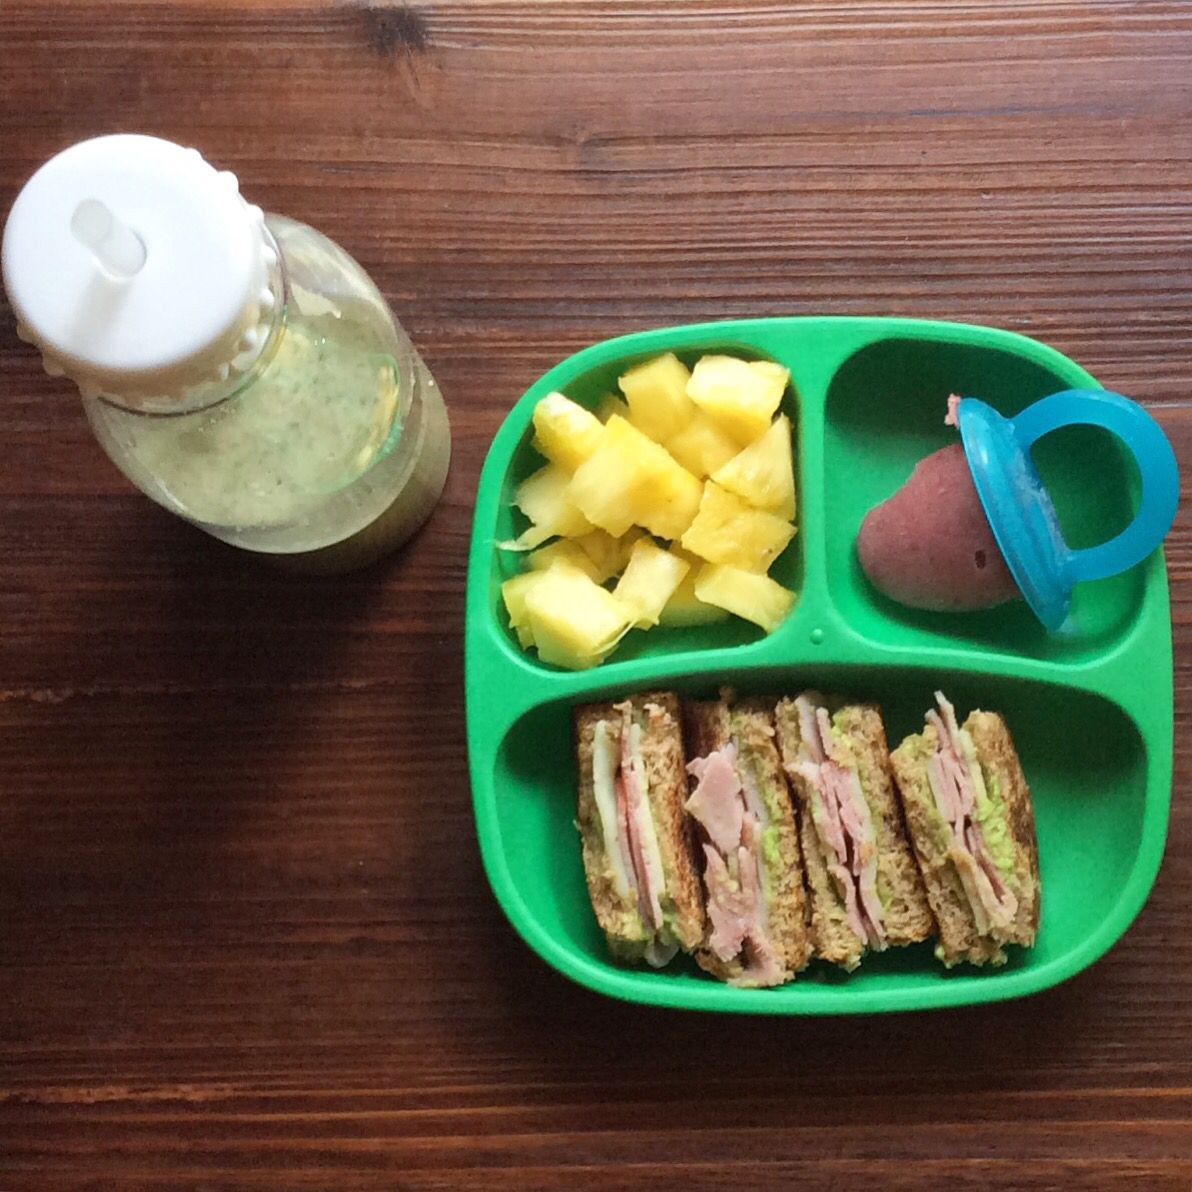 Smoothie, pineapple chunks, banana blueberry ice pop and grilled cheese sandwich with Applegate ham, mashed avocado and mozzarella cheese